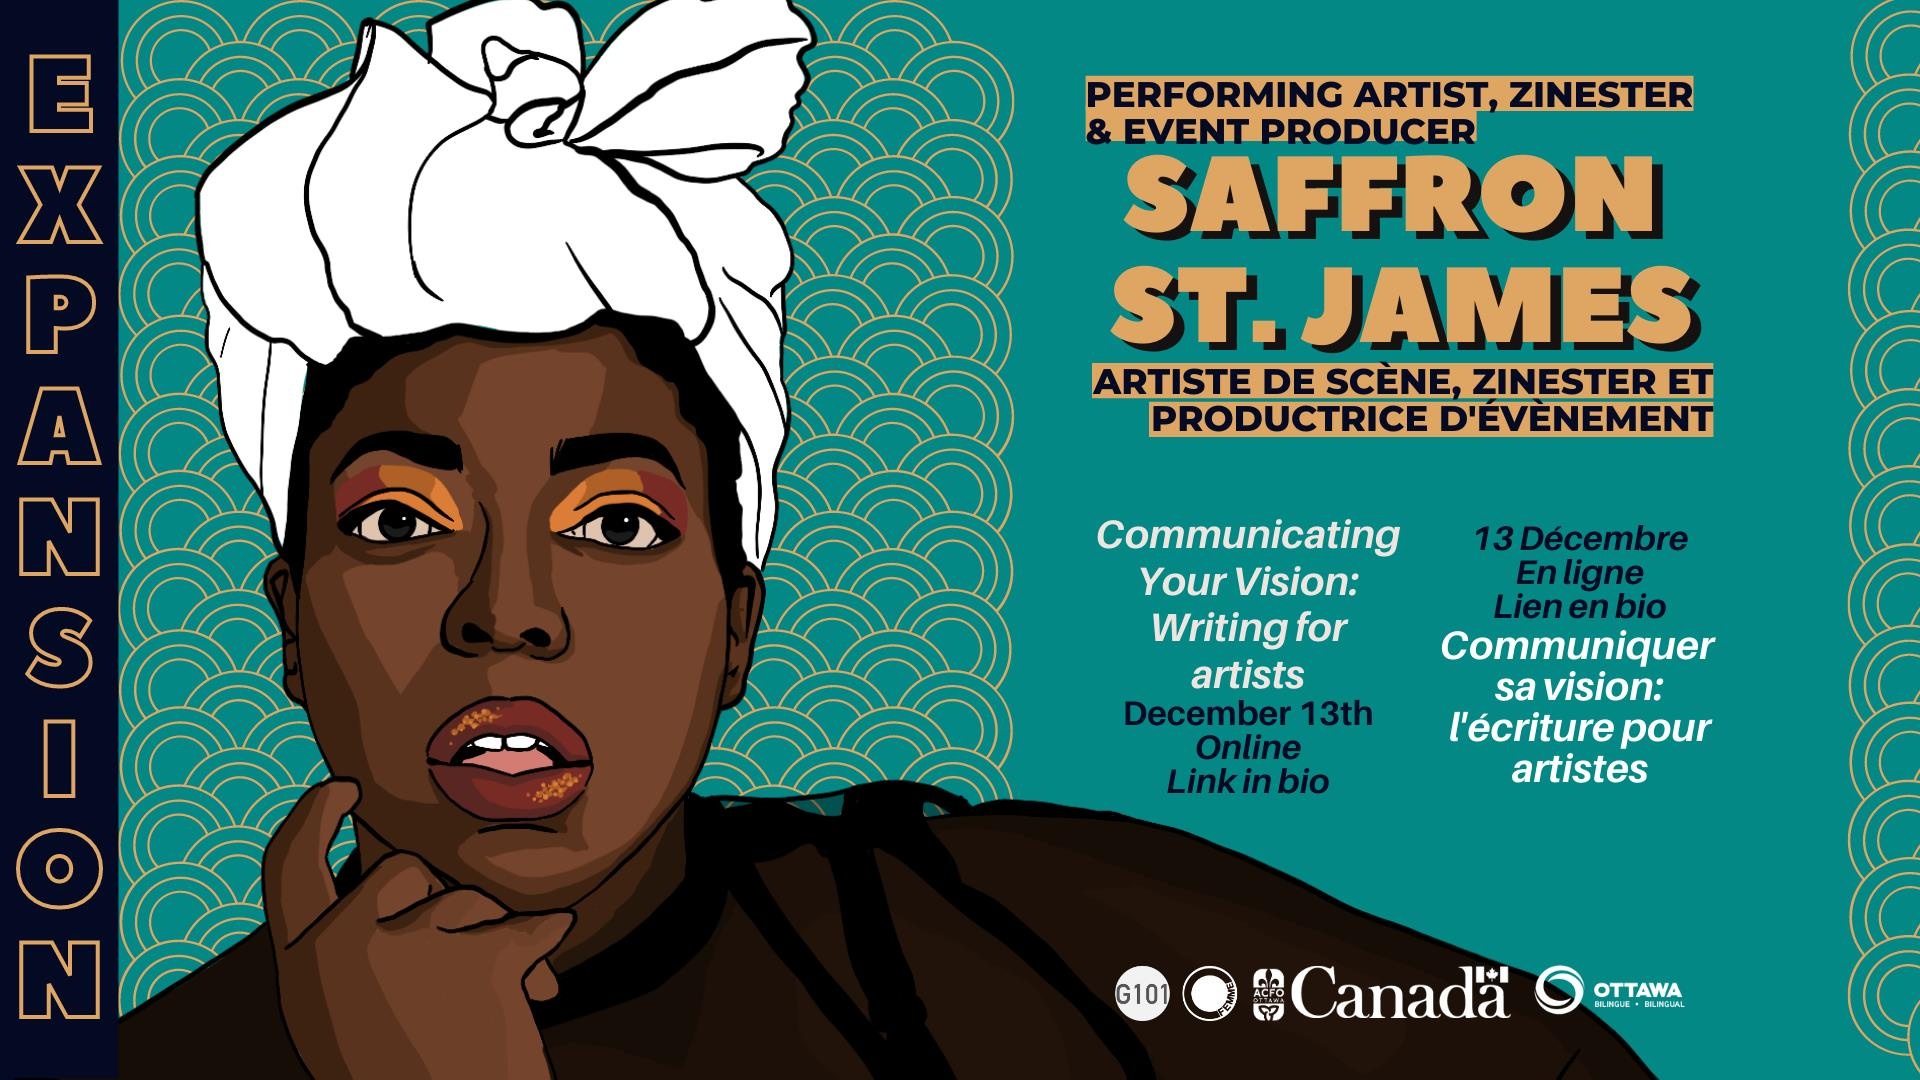 A banner with a teal background featuring a vector illustration of Black performing artist Saffron St.James. They are wearing a white head wrap and a black turtleneck shirt. The text in the banner reads: Performing artist, zinester, event producer Saffon St. James Communicating Your Vision: Writing for Artists December 13th Online